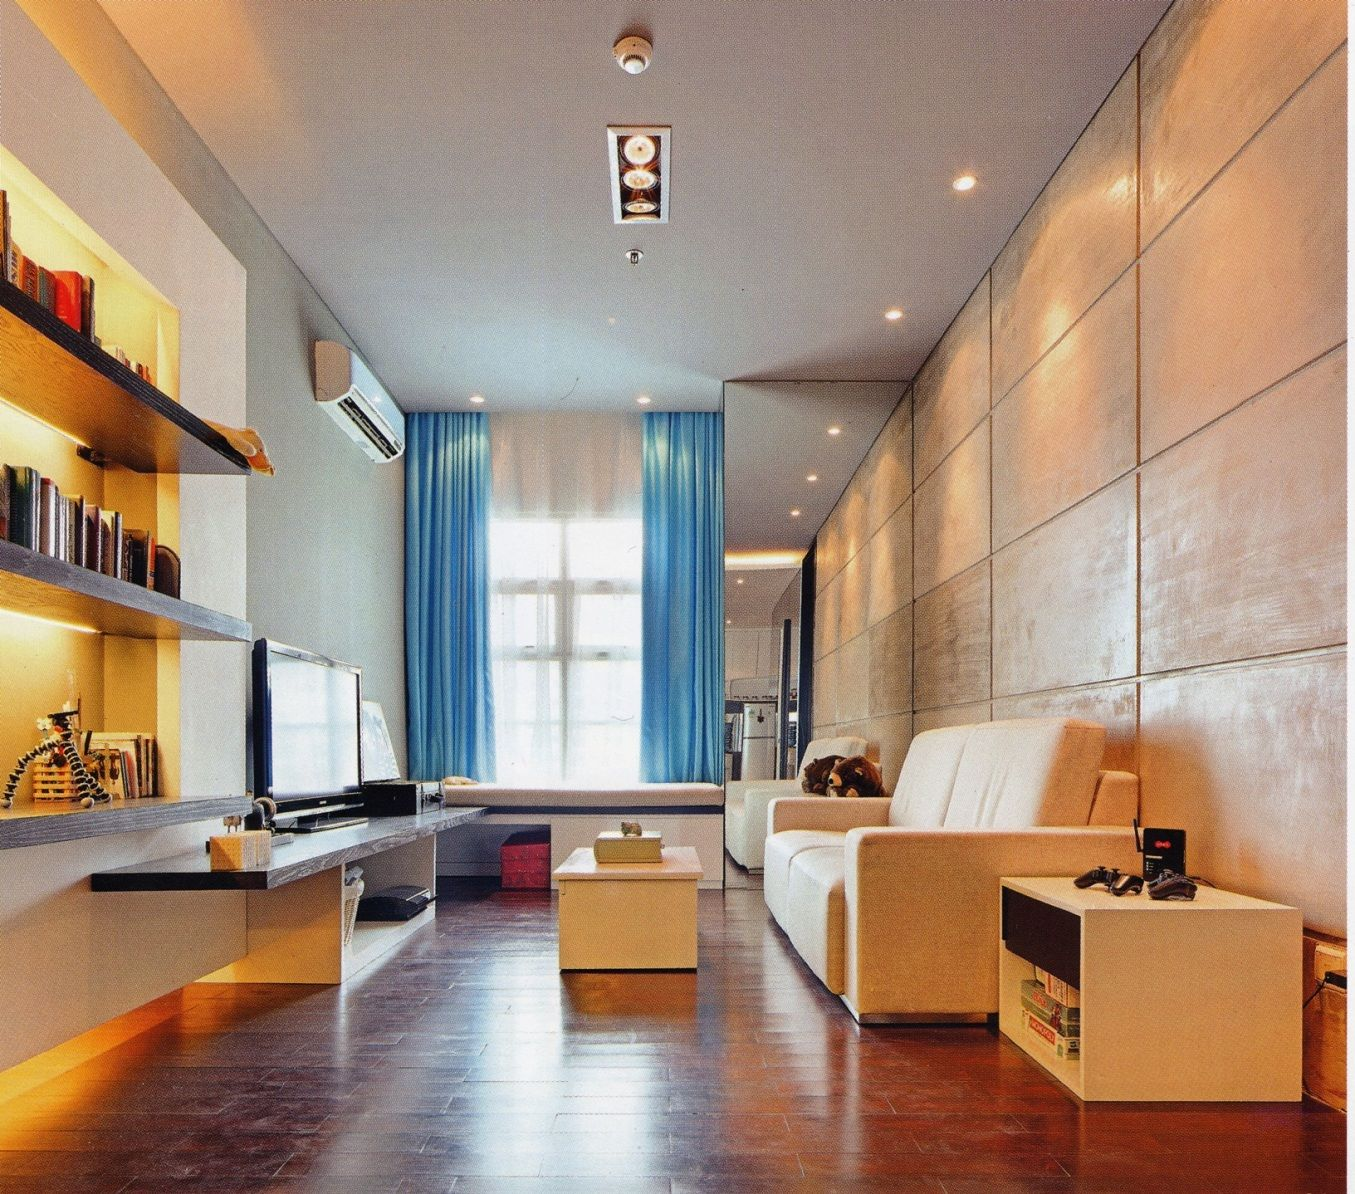 One Bedroom Interior Design Ideas home designs - google search | dream house | pinterest | living